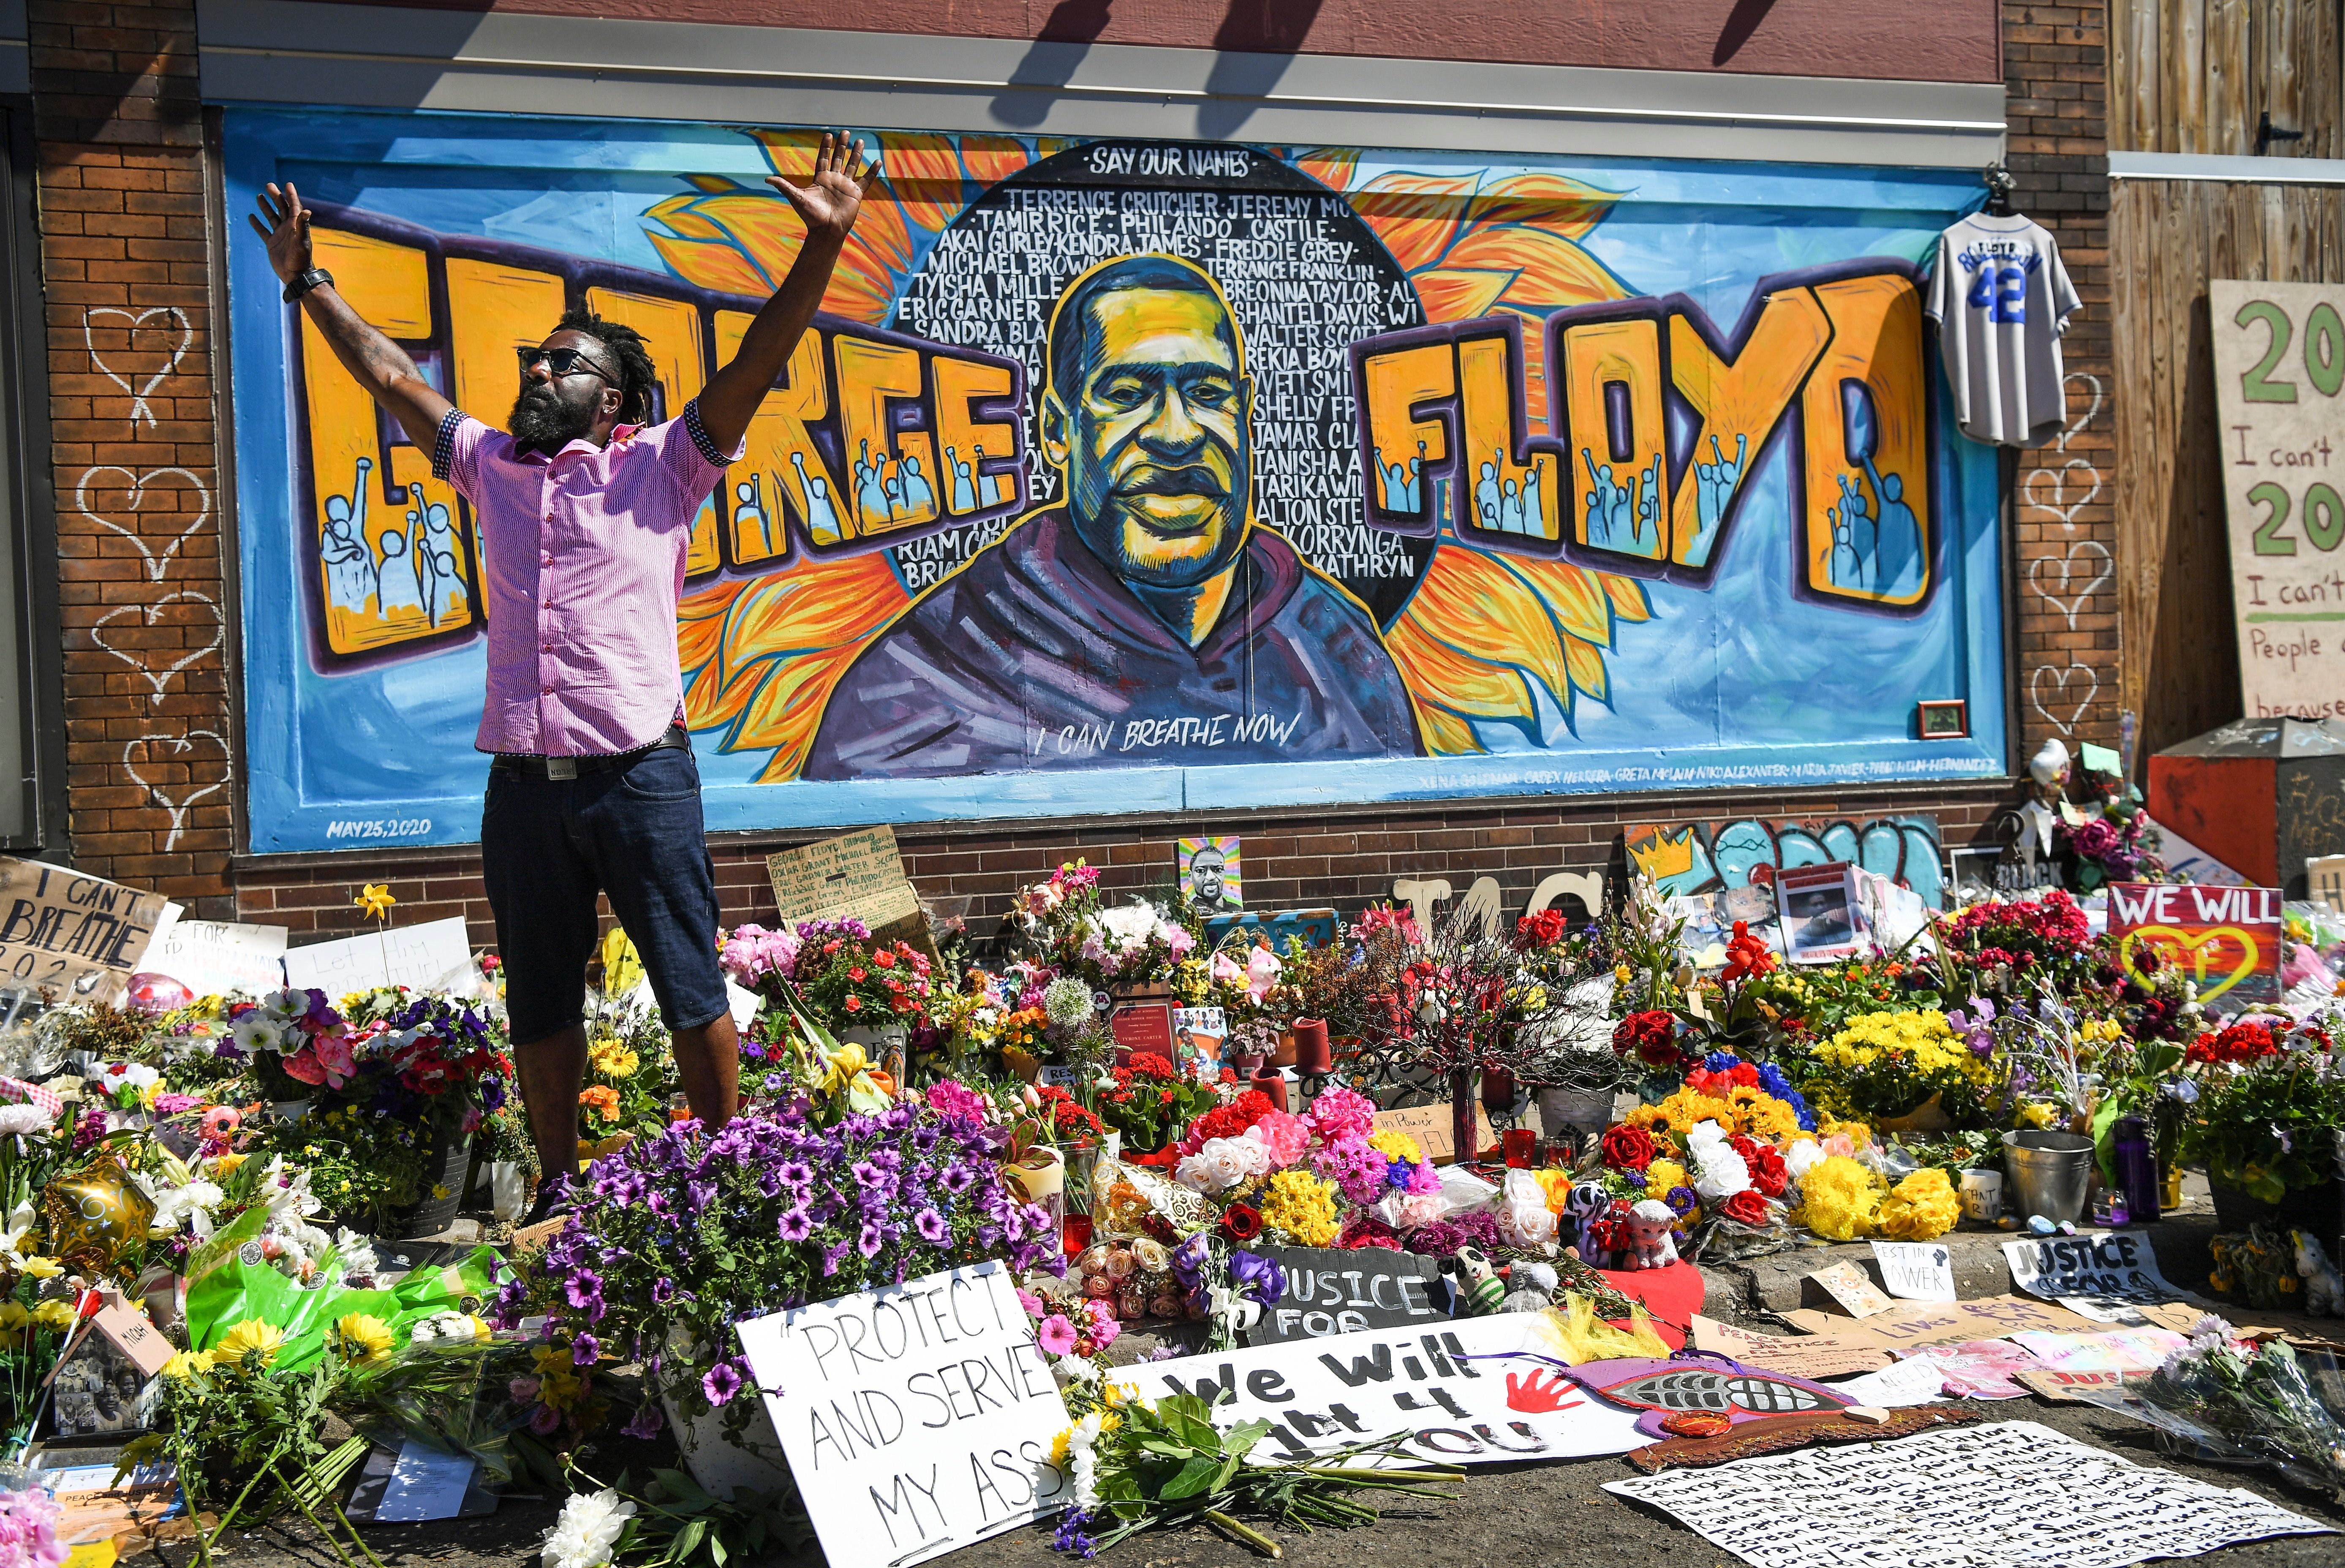 Former NFL player Tyrone Carter speaks at the George Floyd memorial site at 38th Street and Chicago Avenue on June 3, 2020. George Floyd died at this location in Minneapolis police custody on May 25.